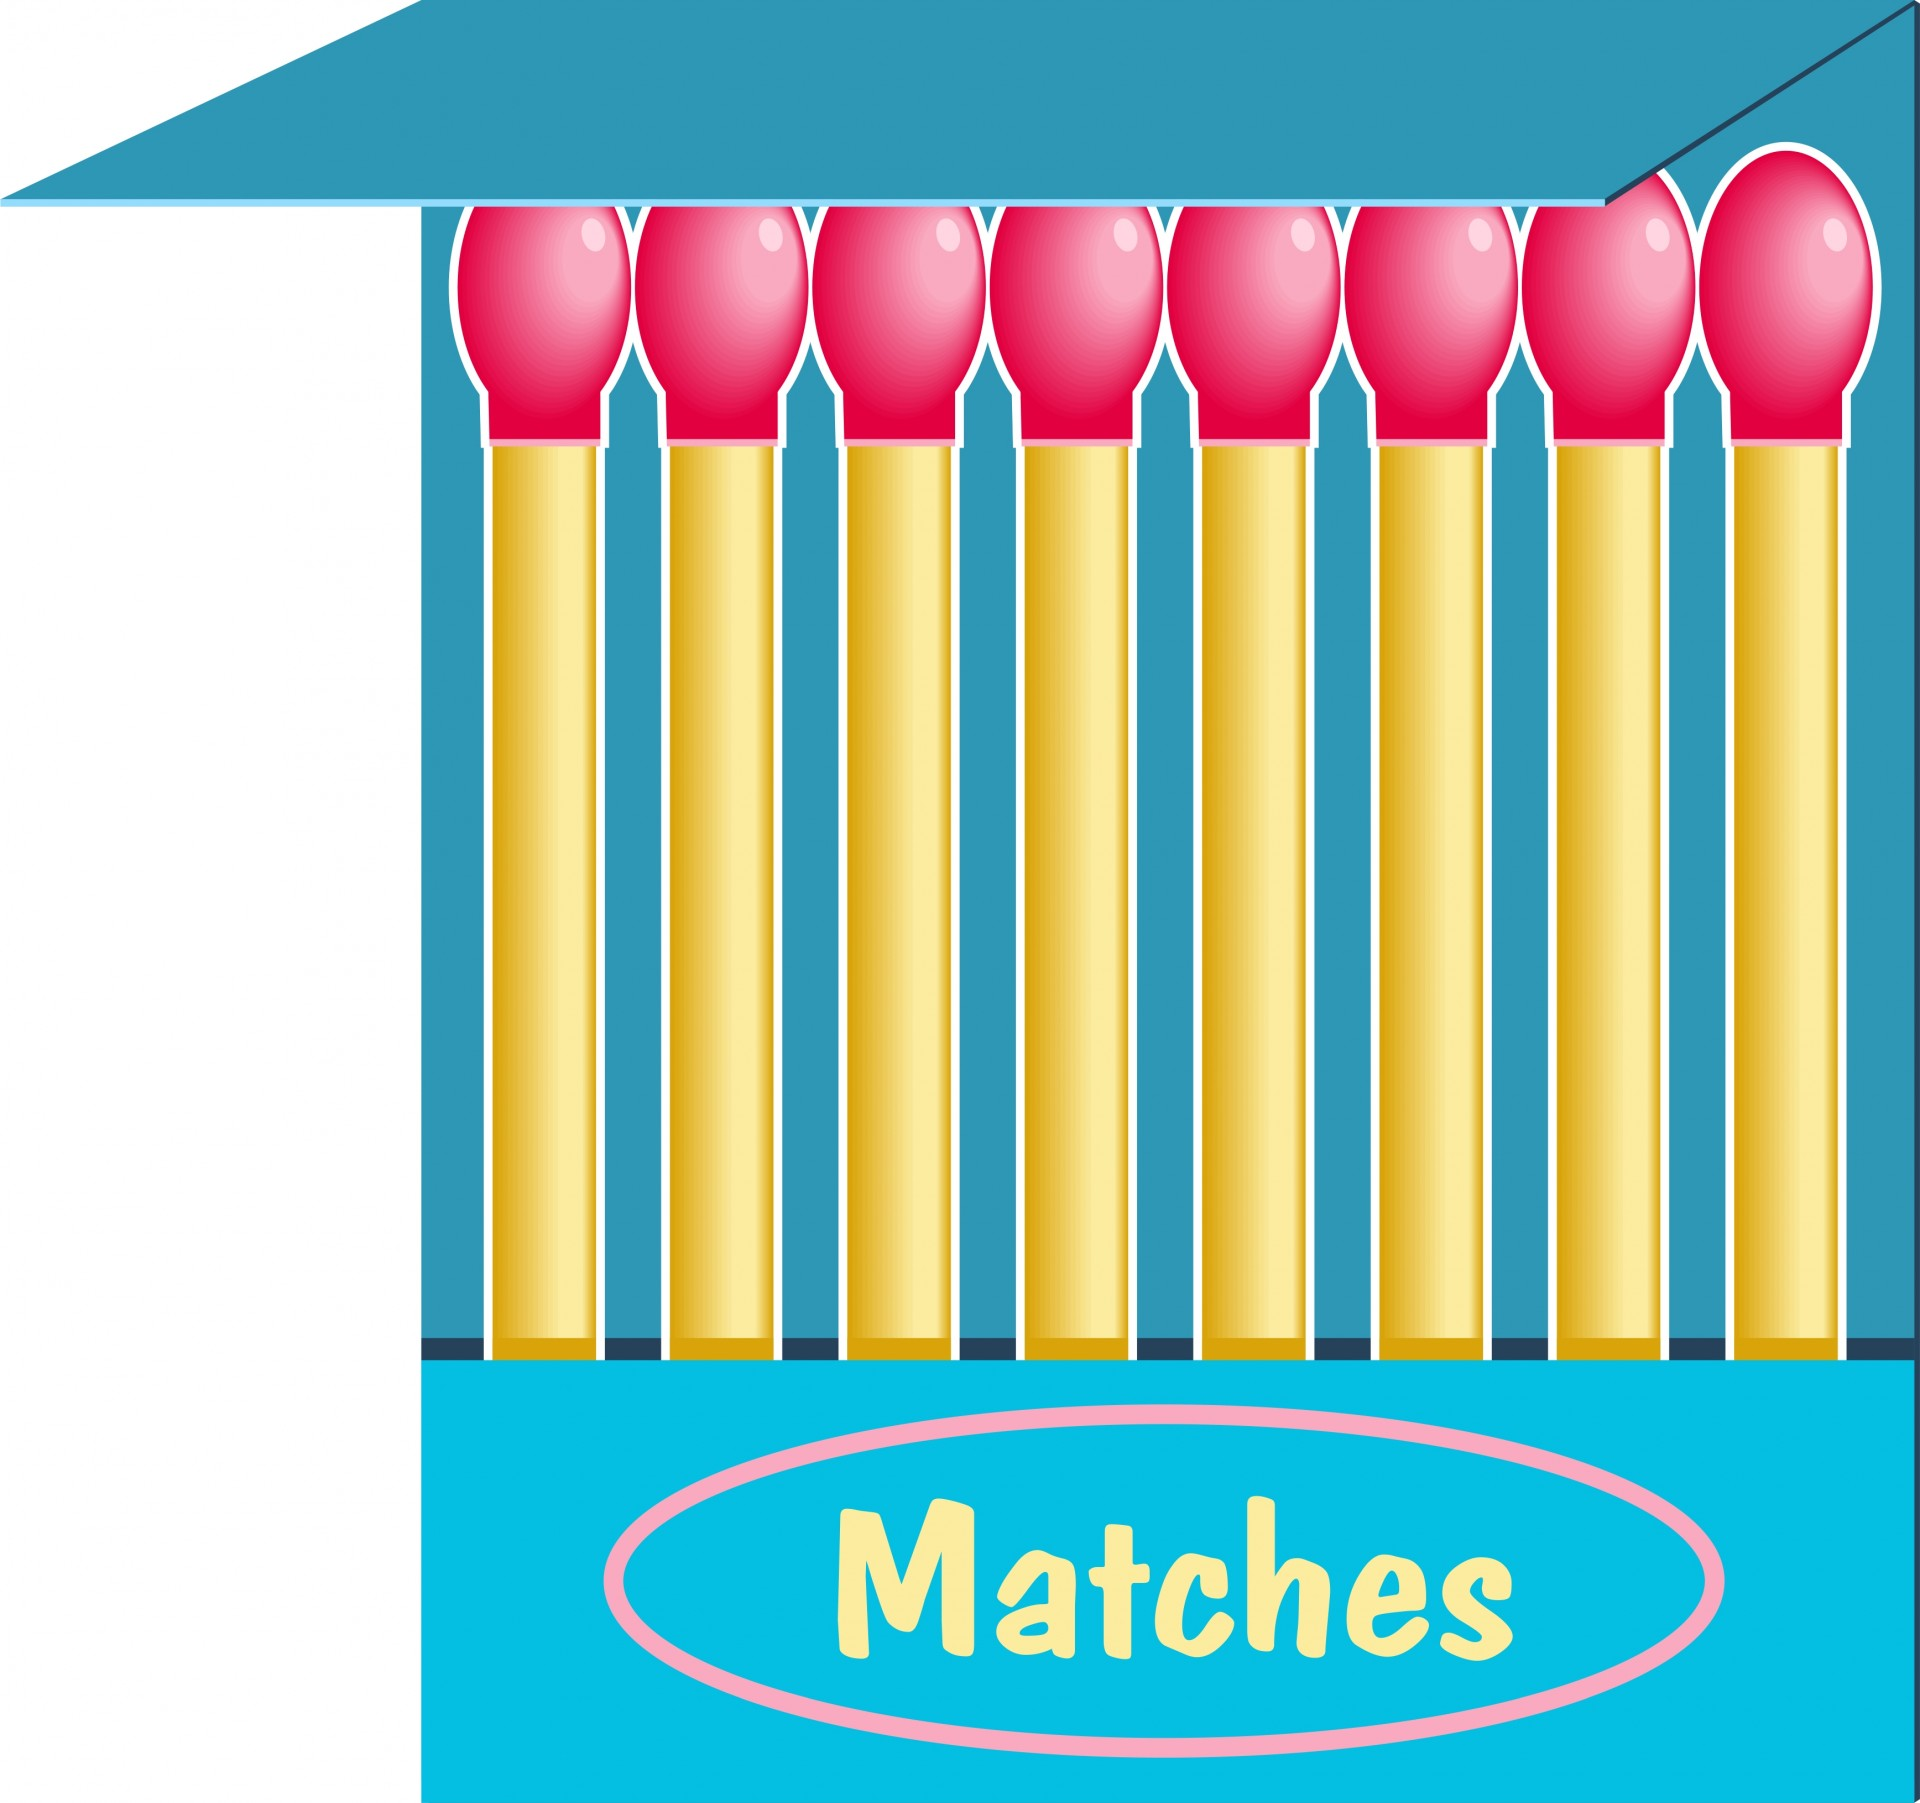 Matches clipart Matches Clip Matches Pictures Public